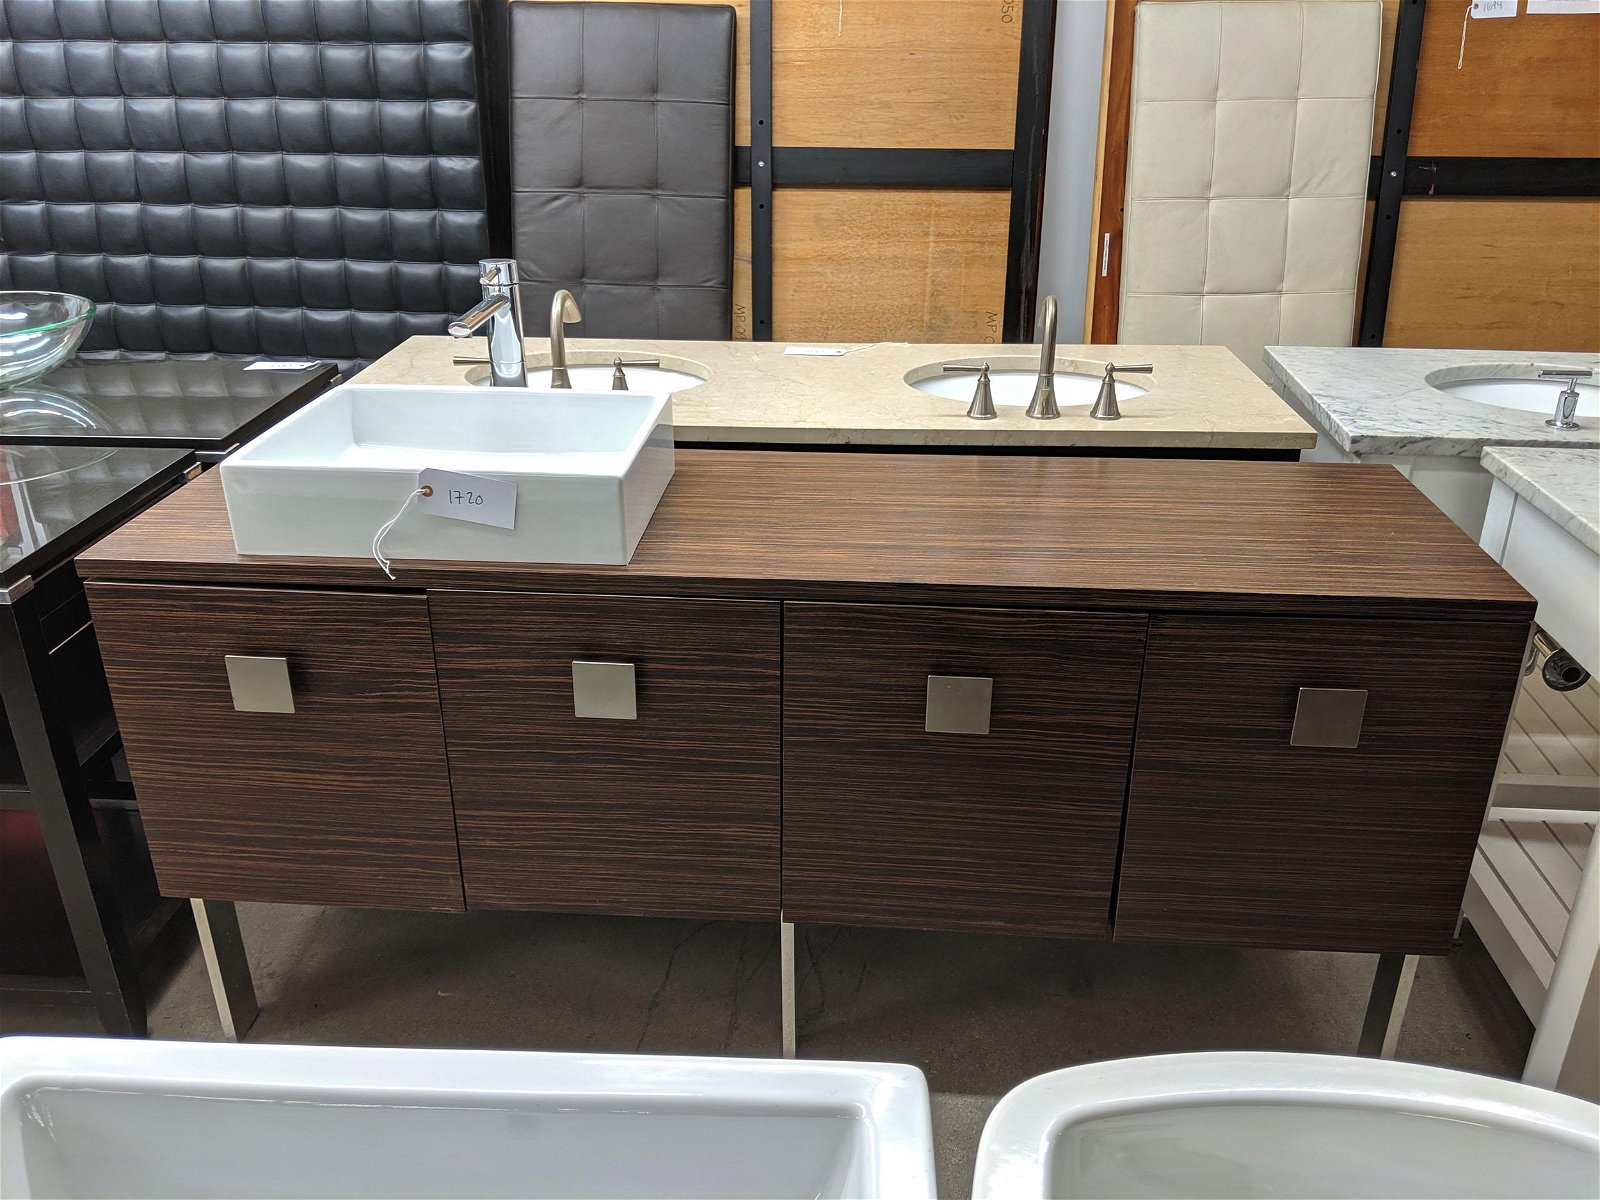 Contemporary Sink and Cabinet